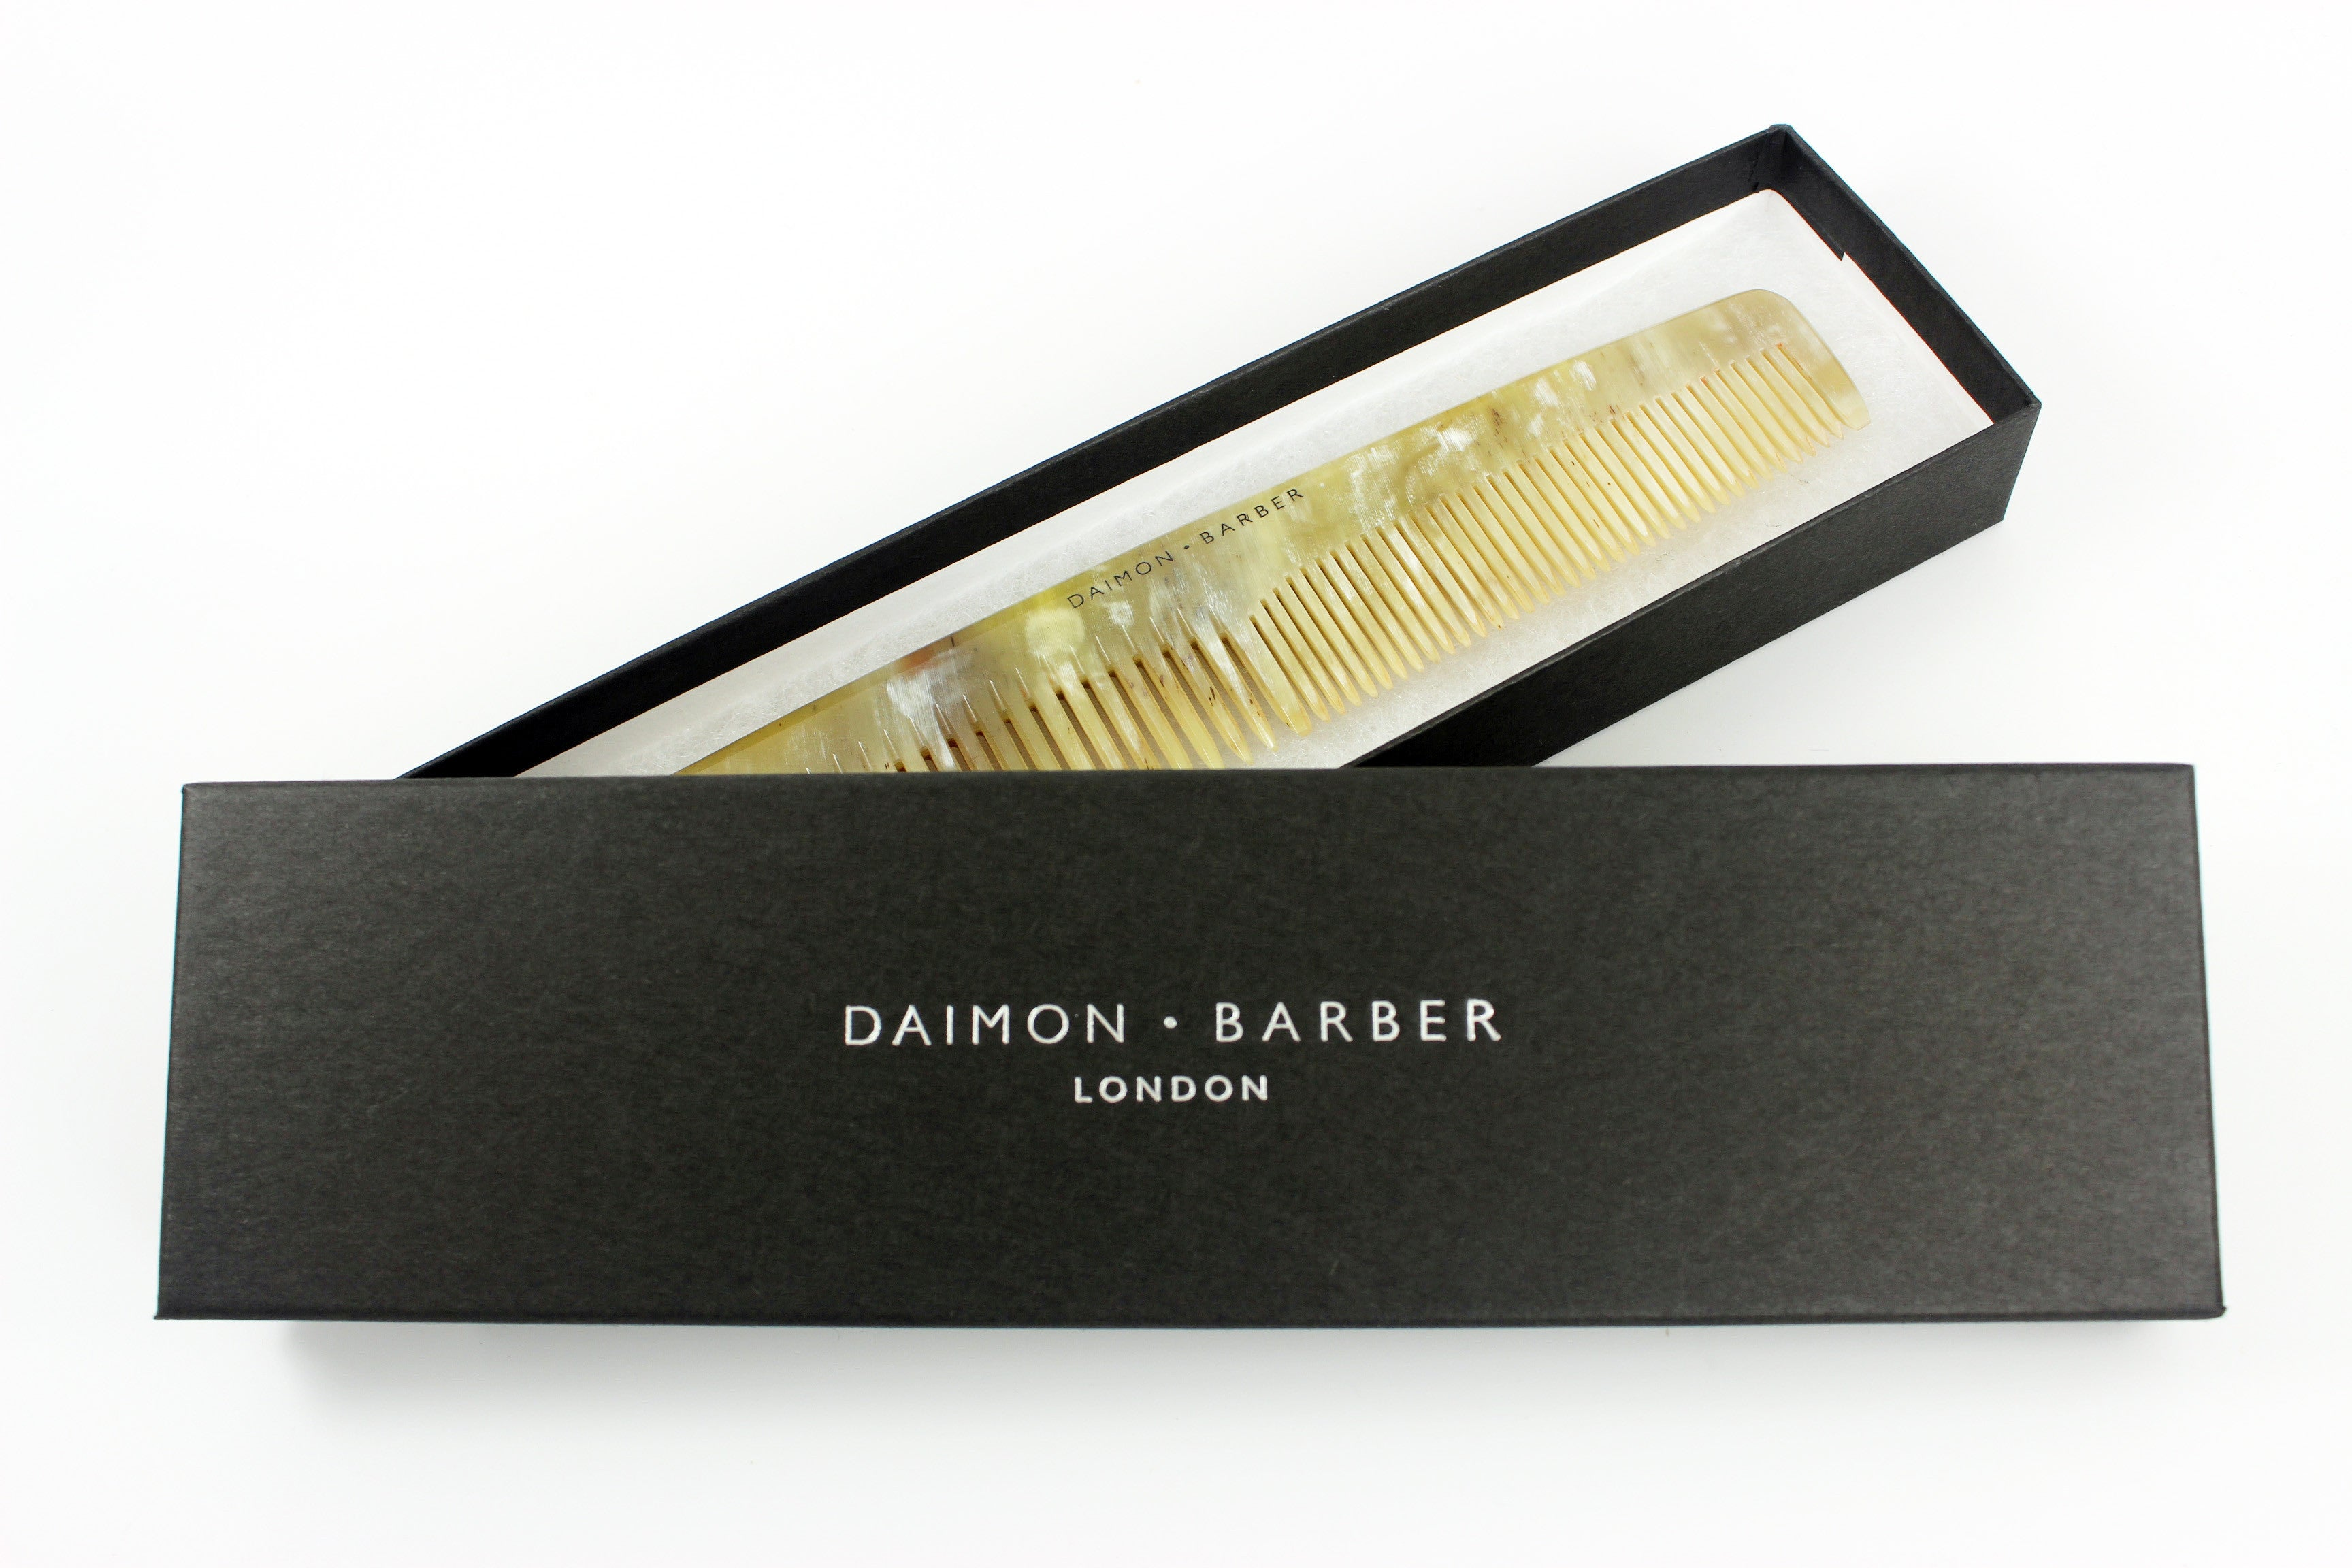 https://www.pomade.com/products/the-daimon-barber-horn-comb